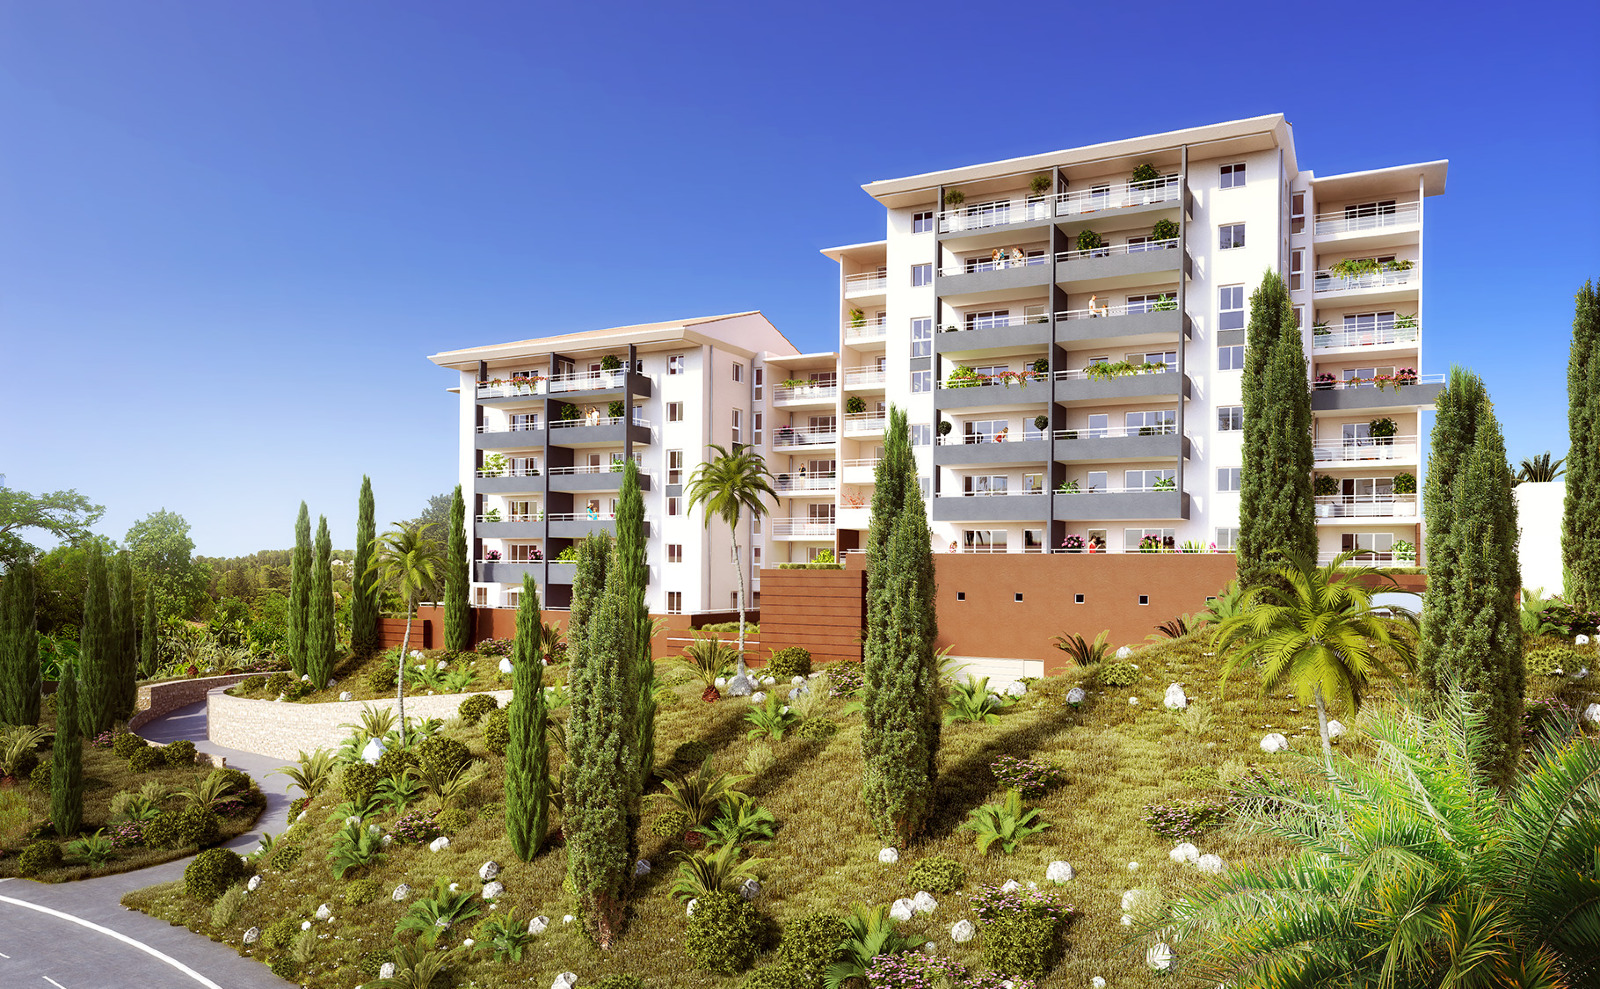 Residence le musset t2 h1 42 44 60m2 a sarrola for Residence immobilier